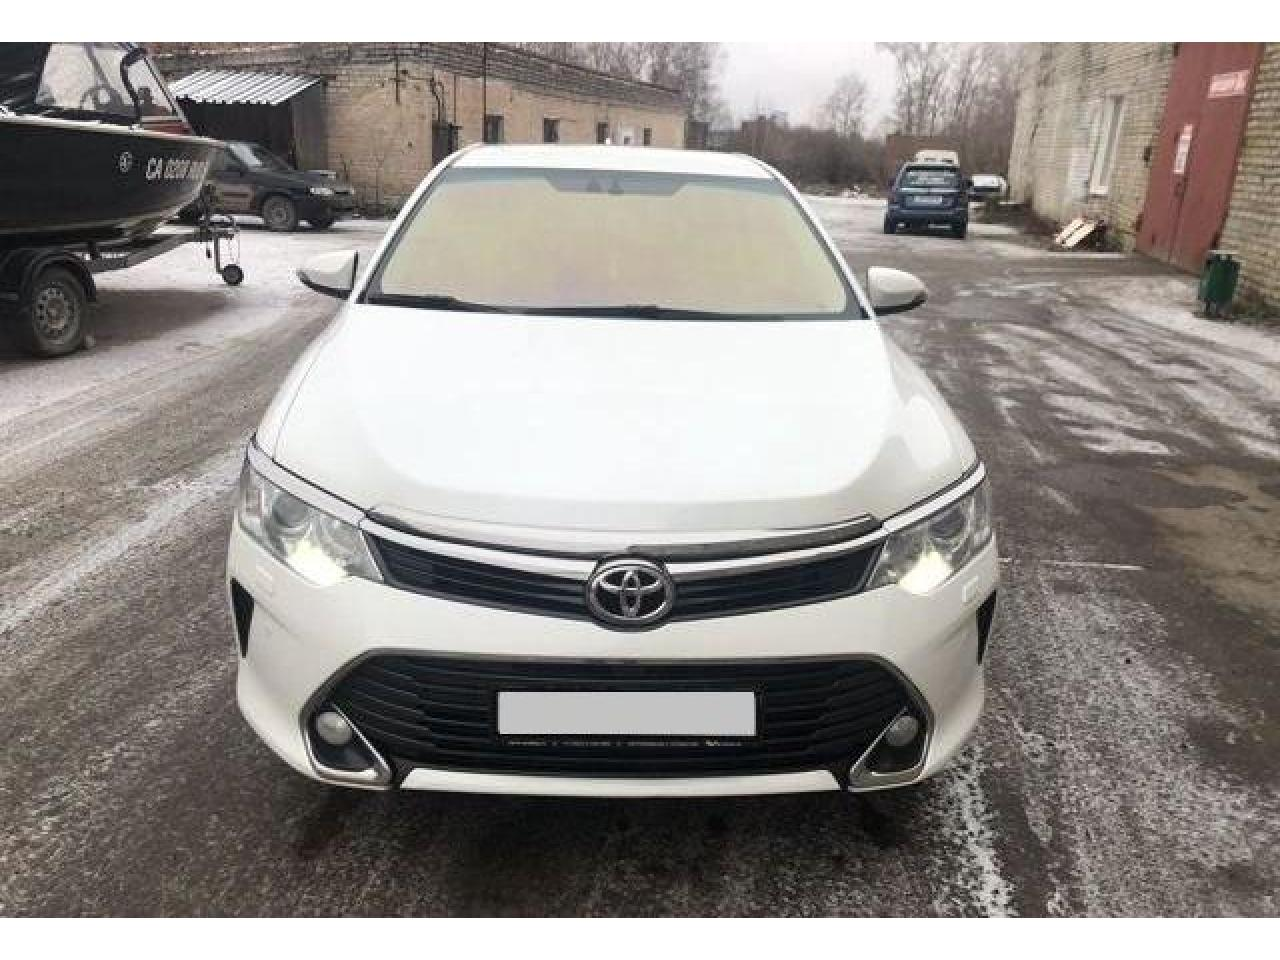 Toyota Camry, 2015 г. - 3/3